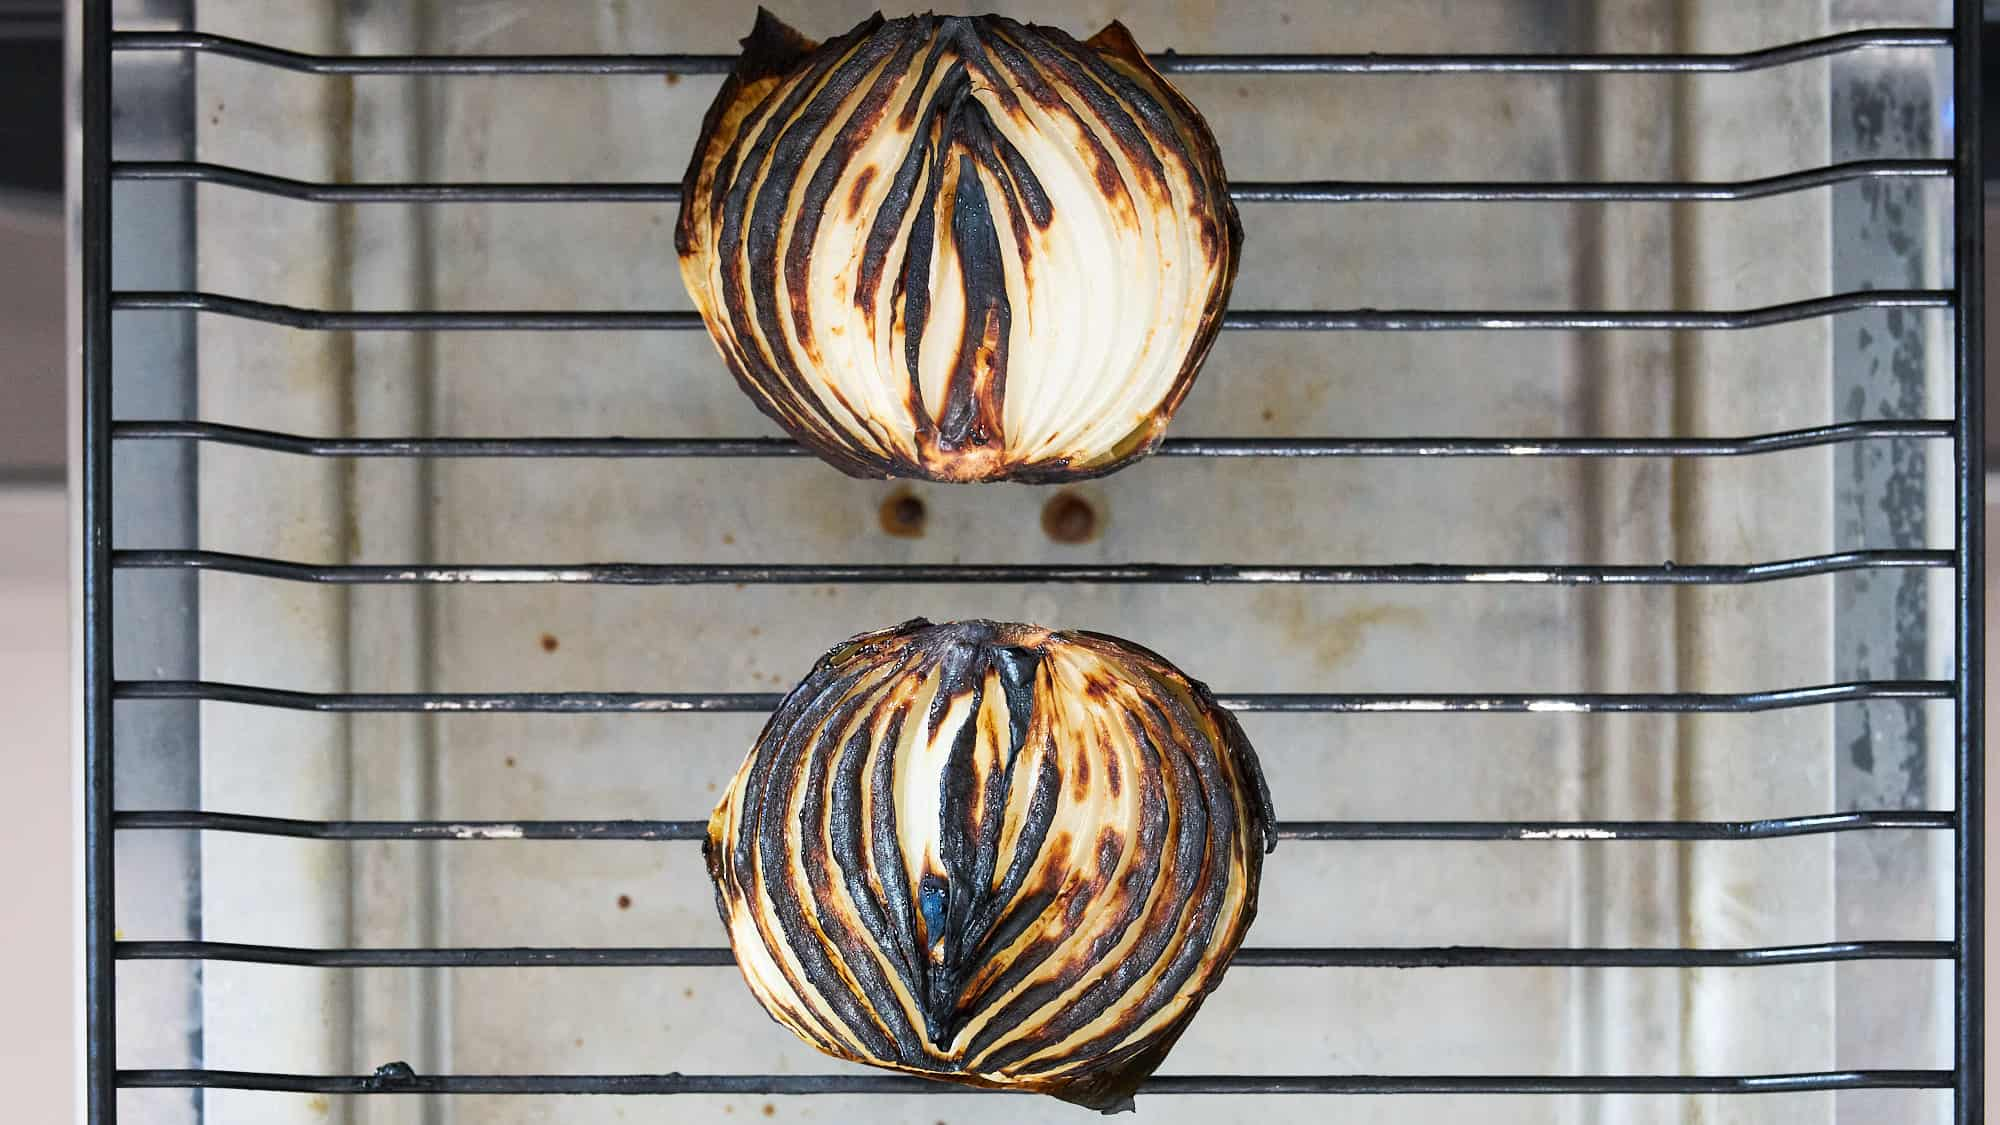 Char-grilled onion halves on grill rack for making Pot au Feu recipe.